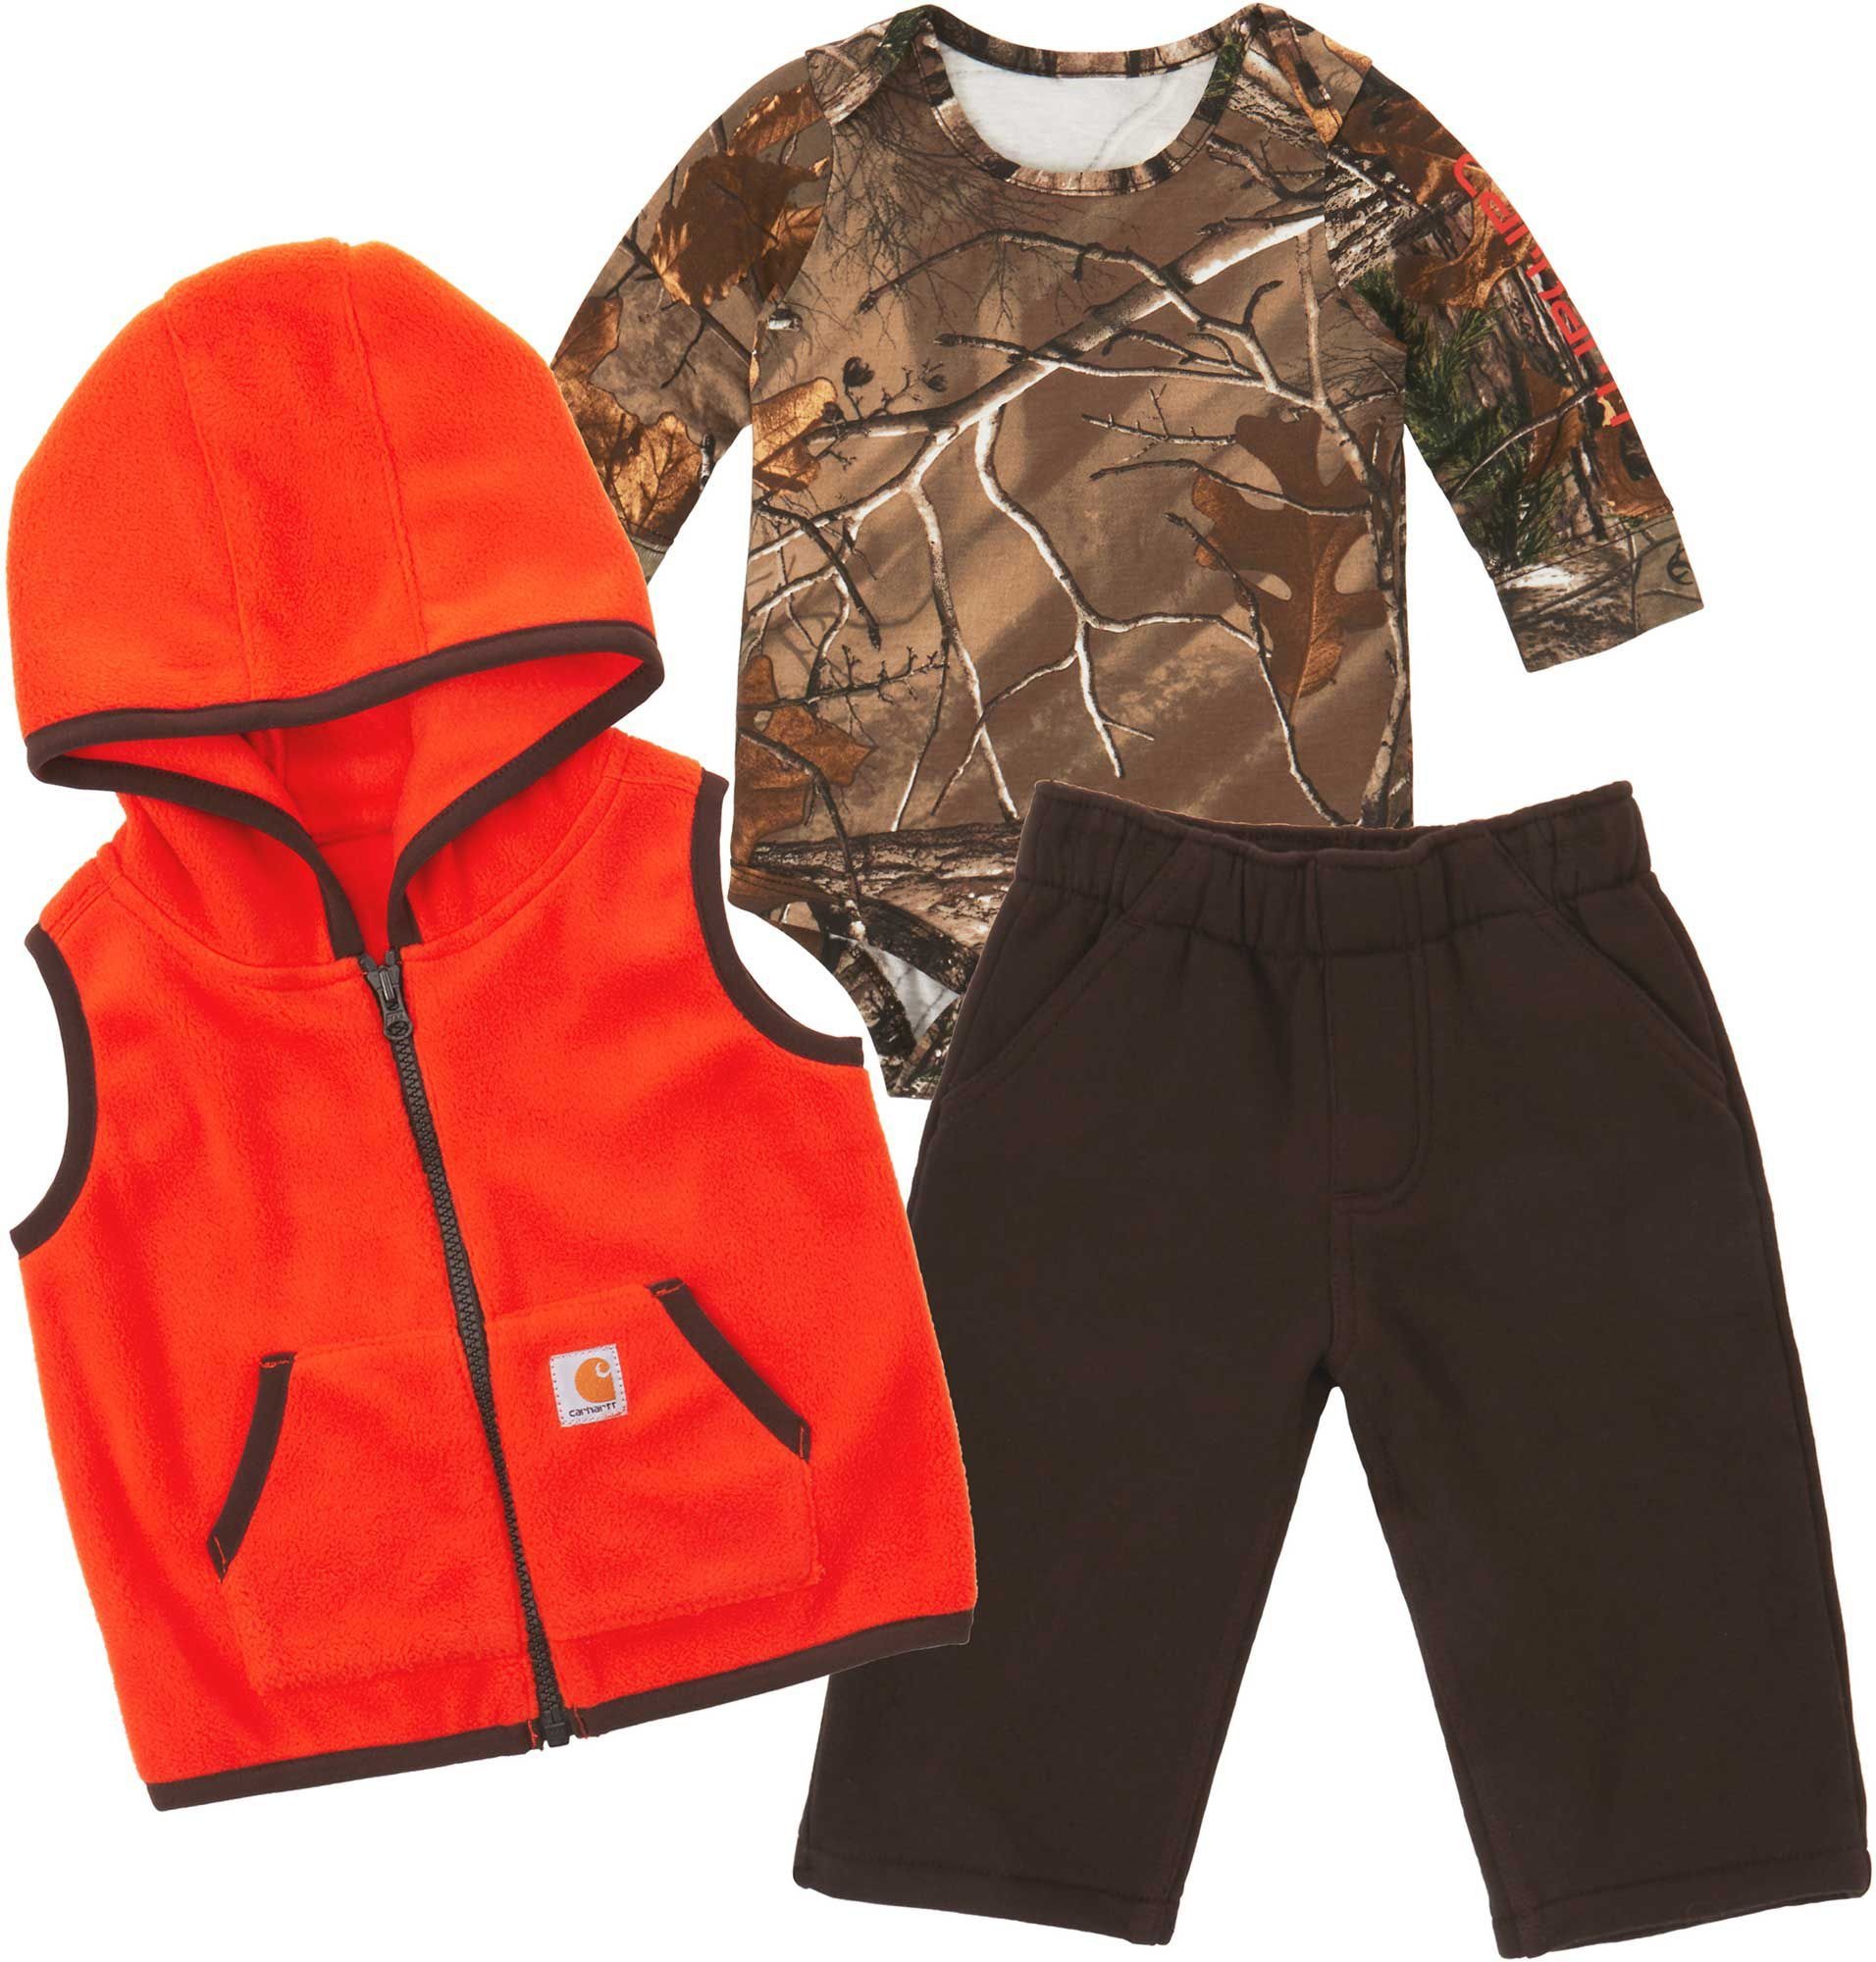 9e2c26995 Carhartt Infant Camo 3-Piece Gift Set, Size: 24M, Brown | Products ...